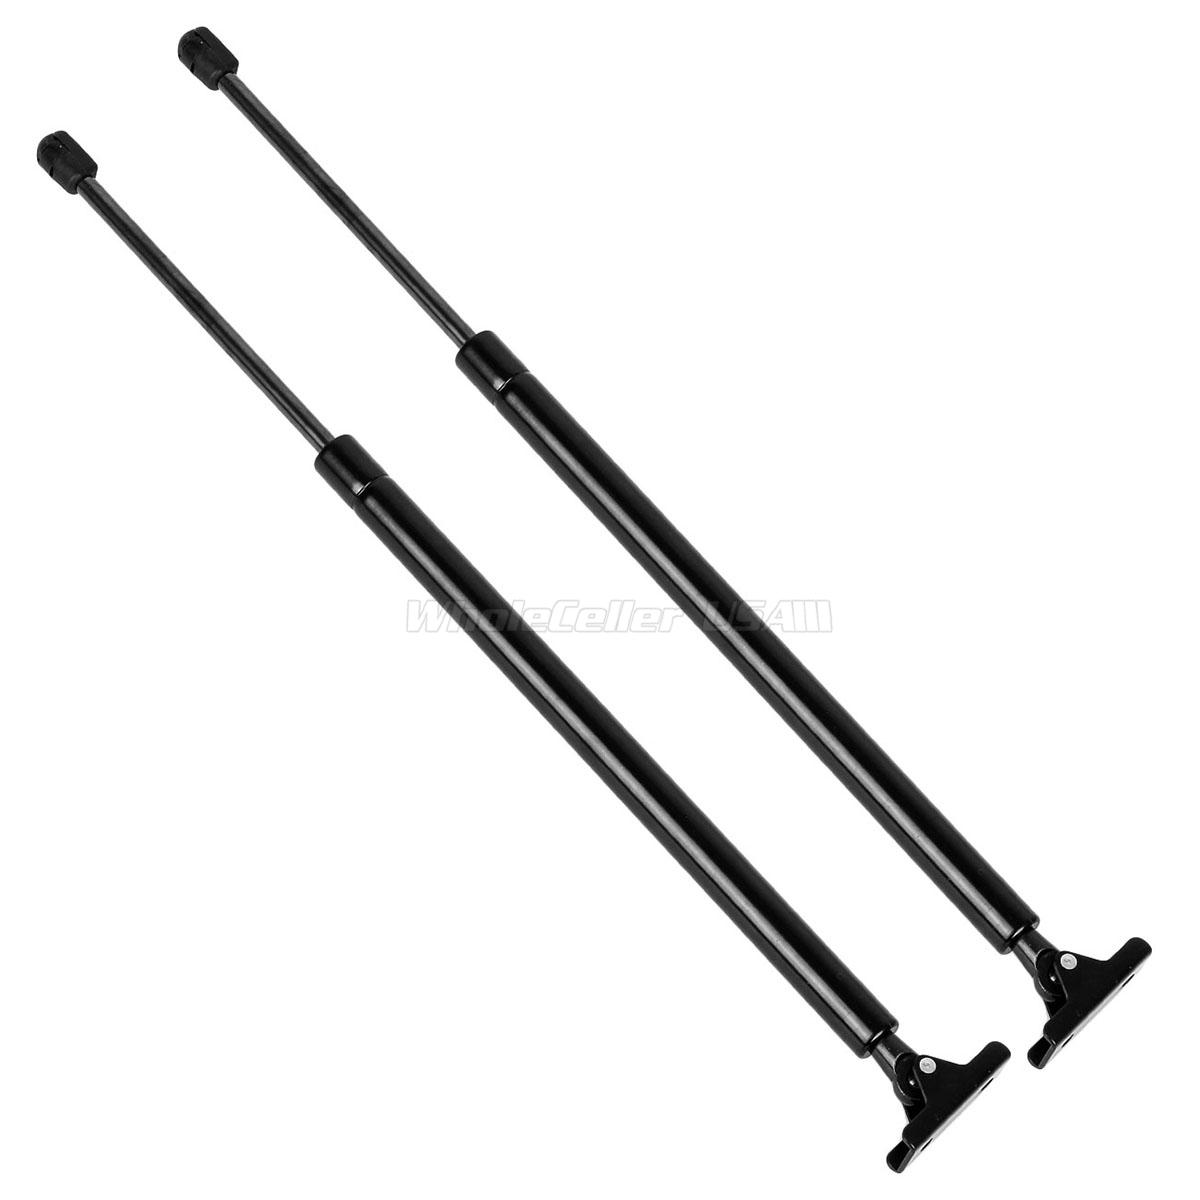 2x Tailgate Hatch Lift Supports Shock Strut Props for Jeep